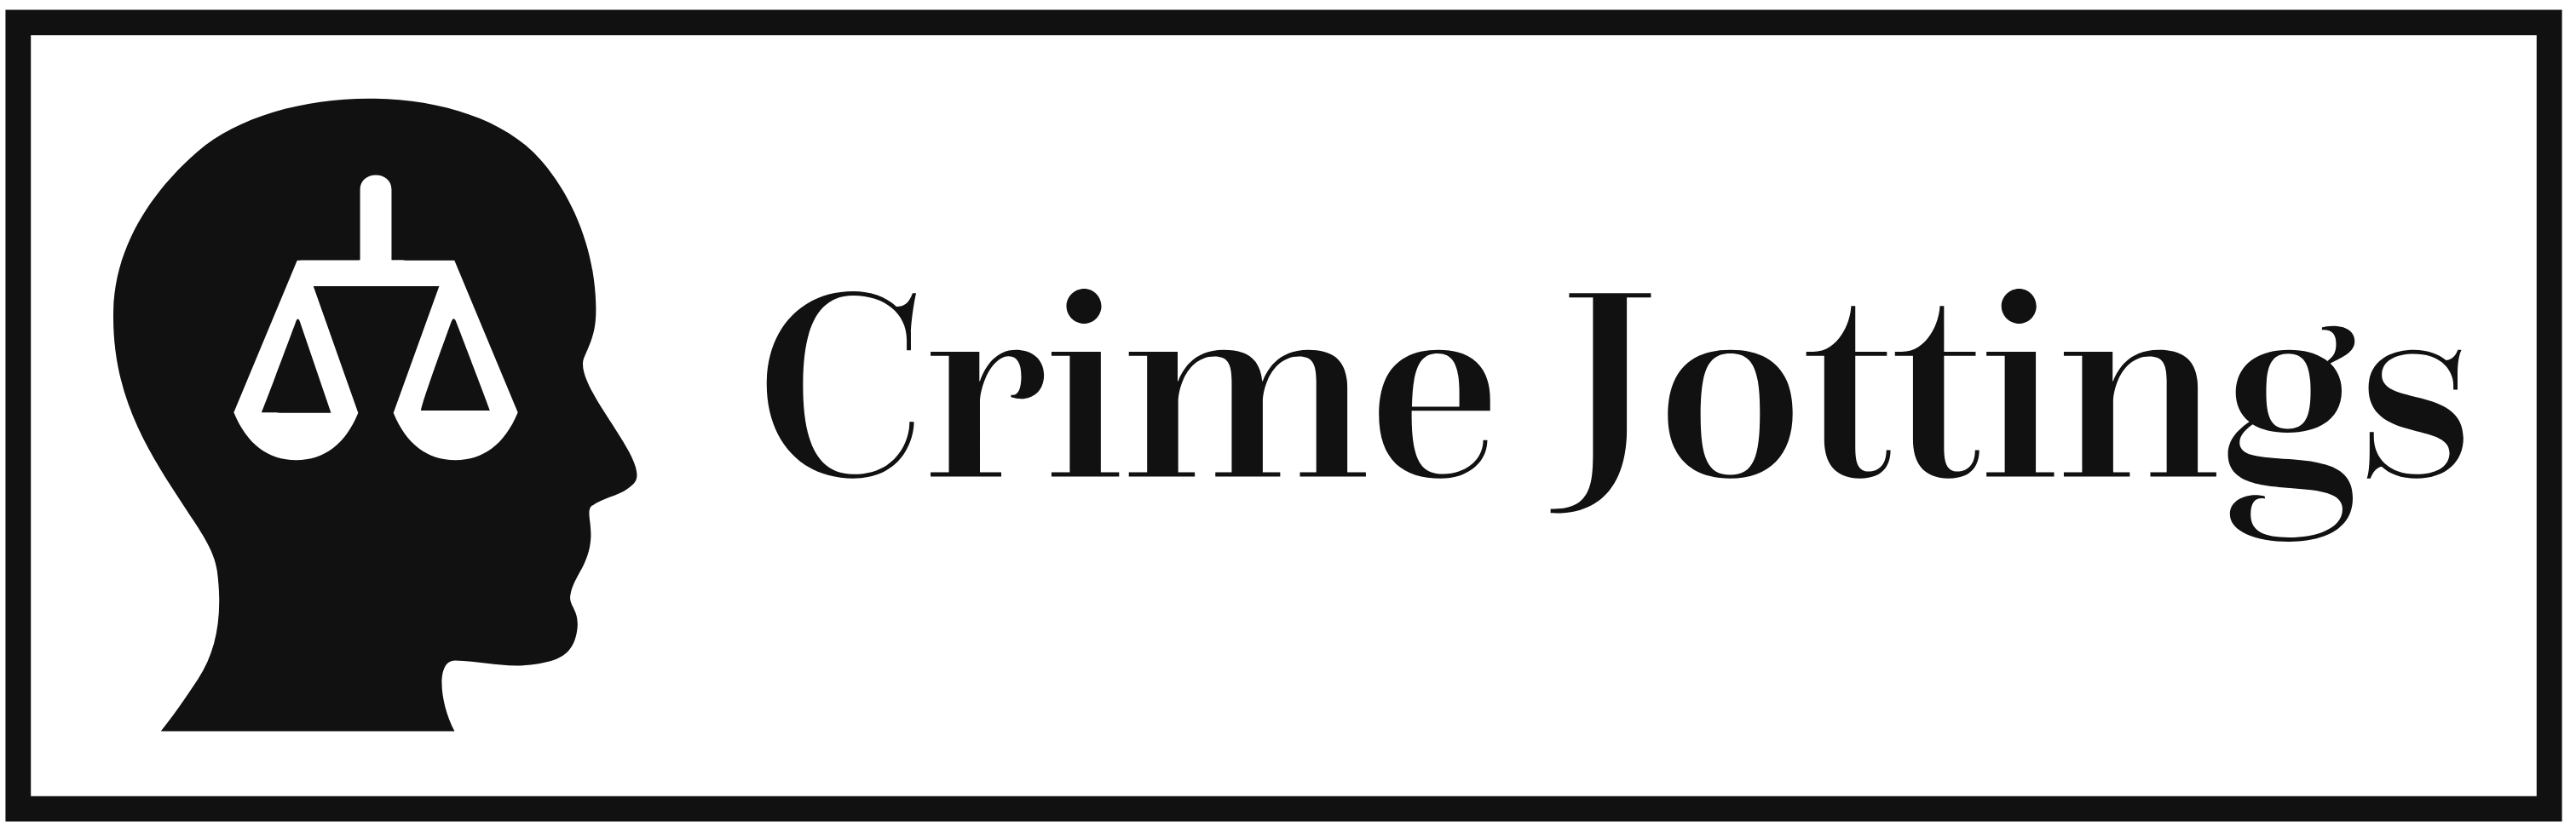 Crime Jottings